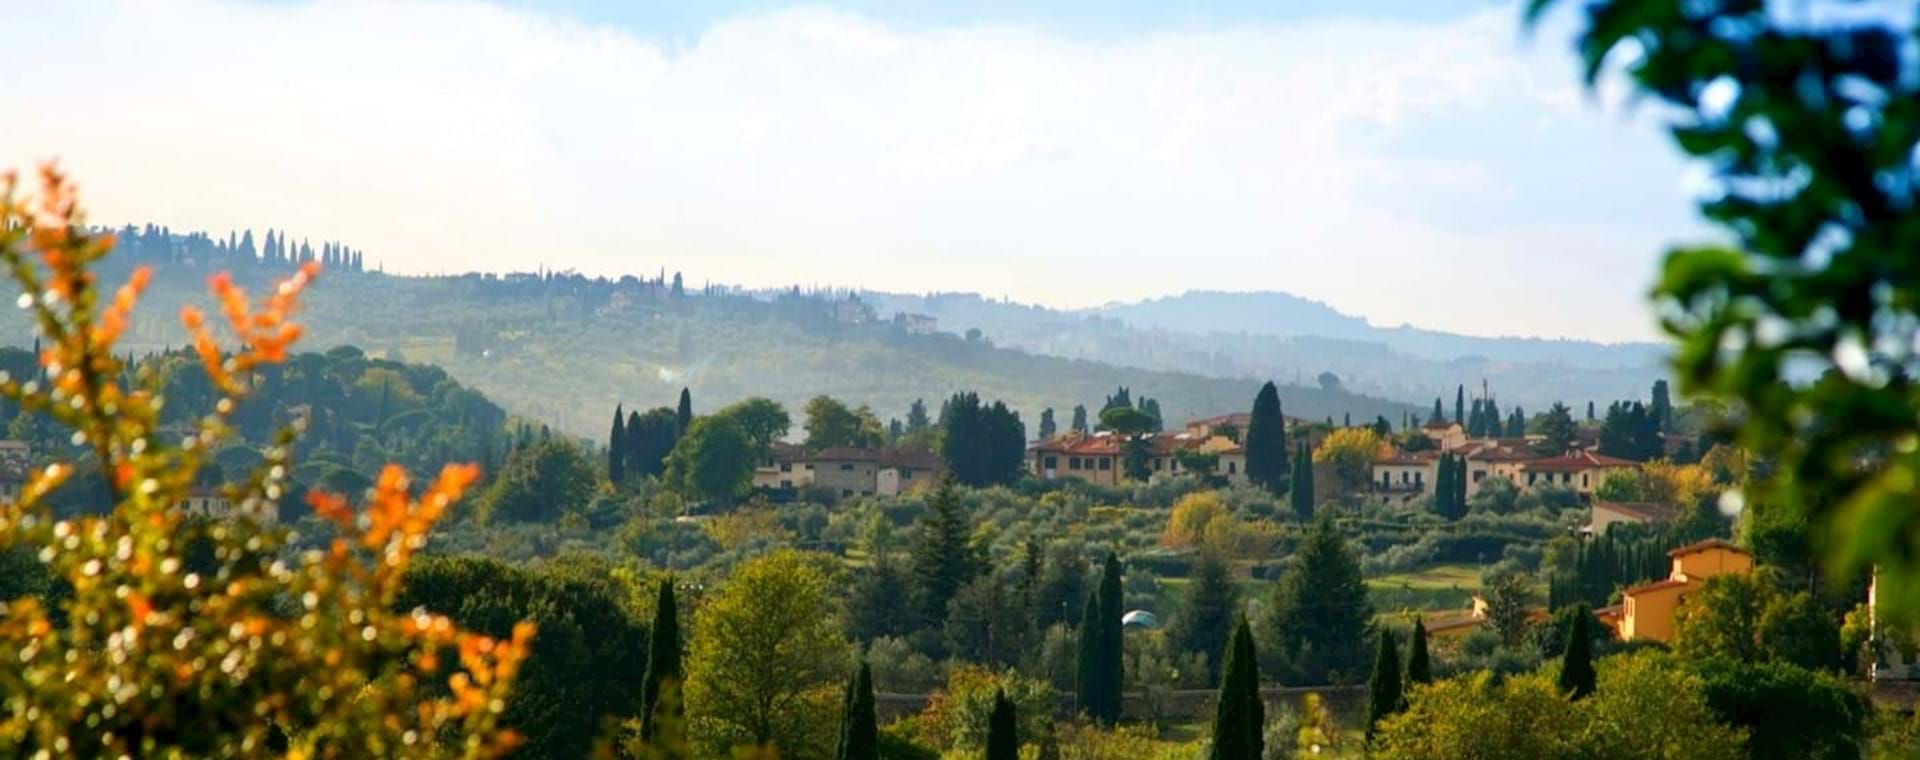 Tuscan Vineyard Villa Dinner and Wine Tasting Experience